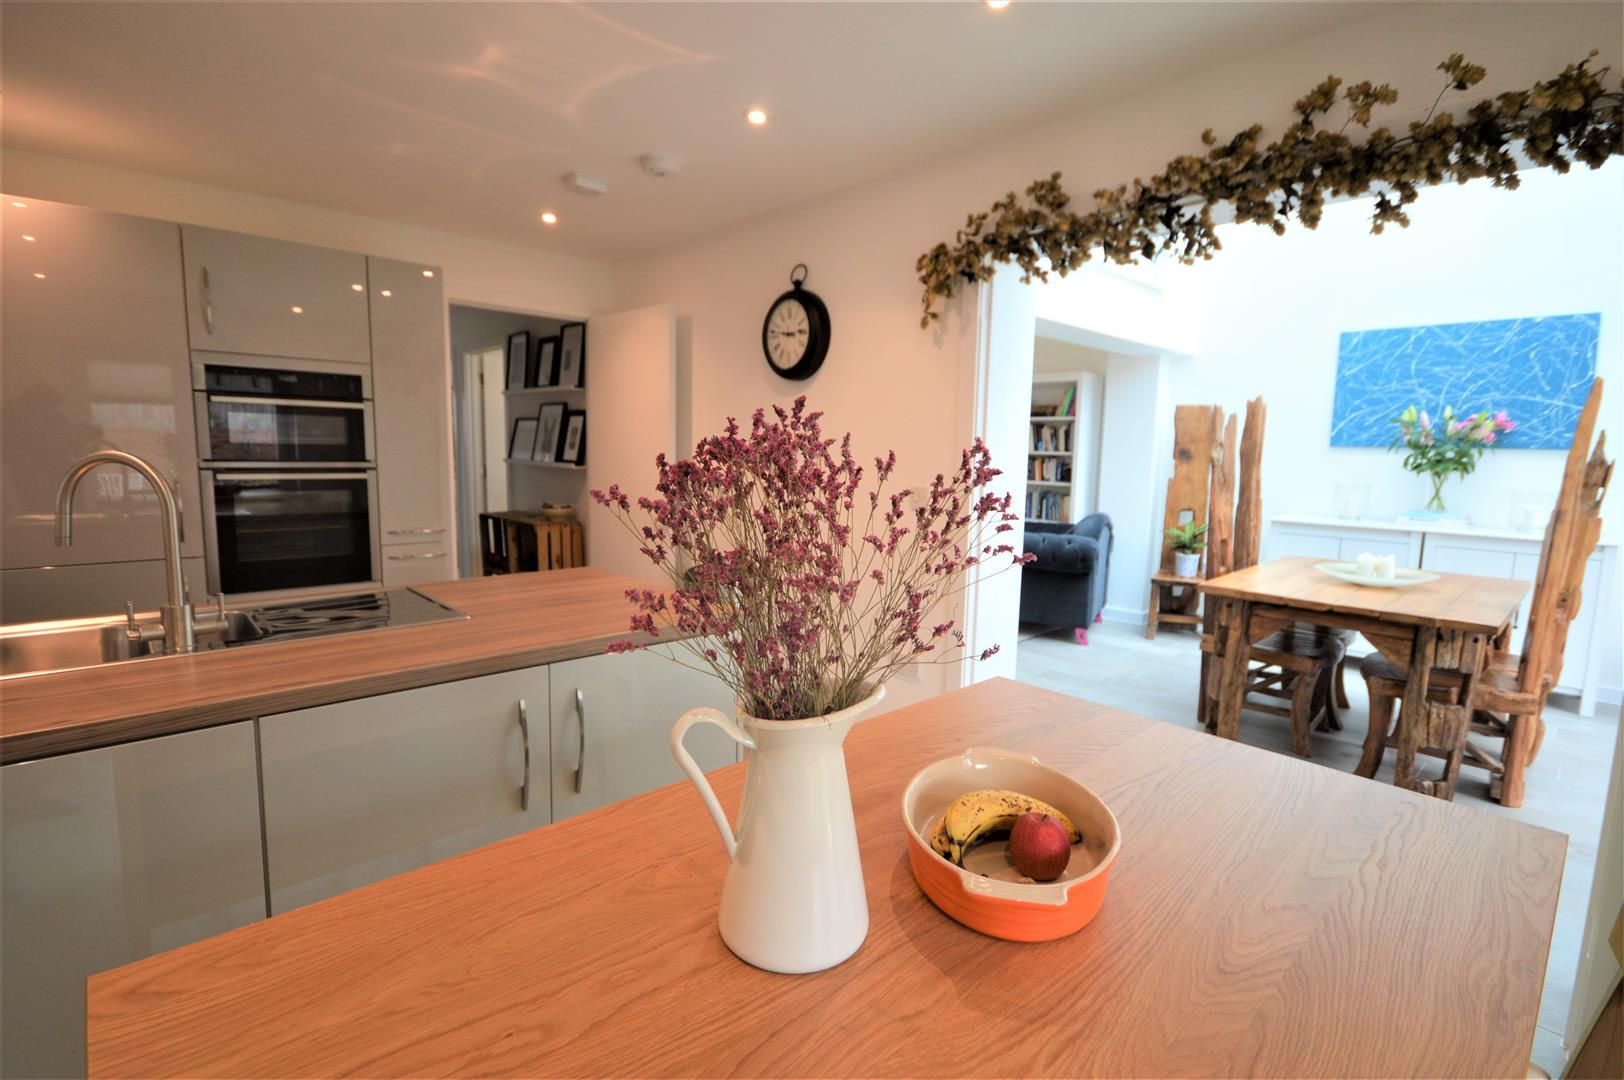 5 bed detached for sale in Weobley  - Property Image 5